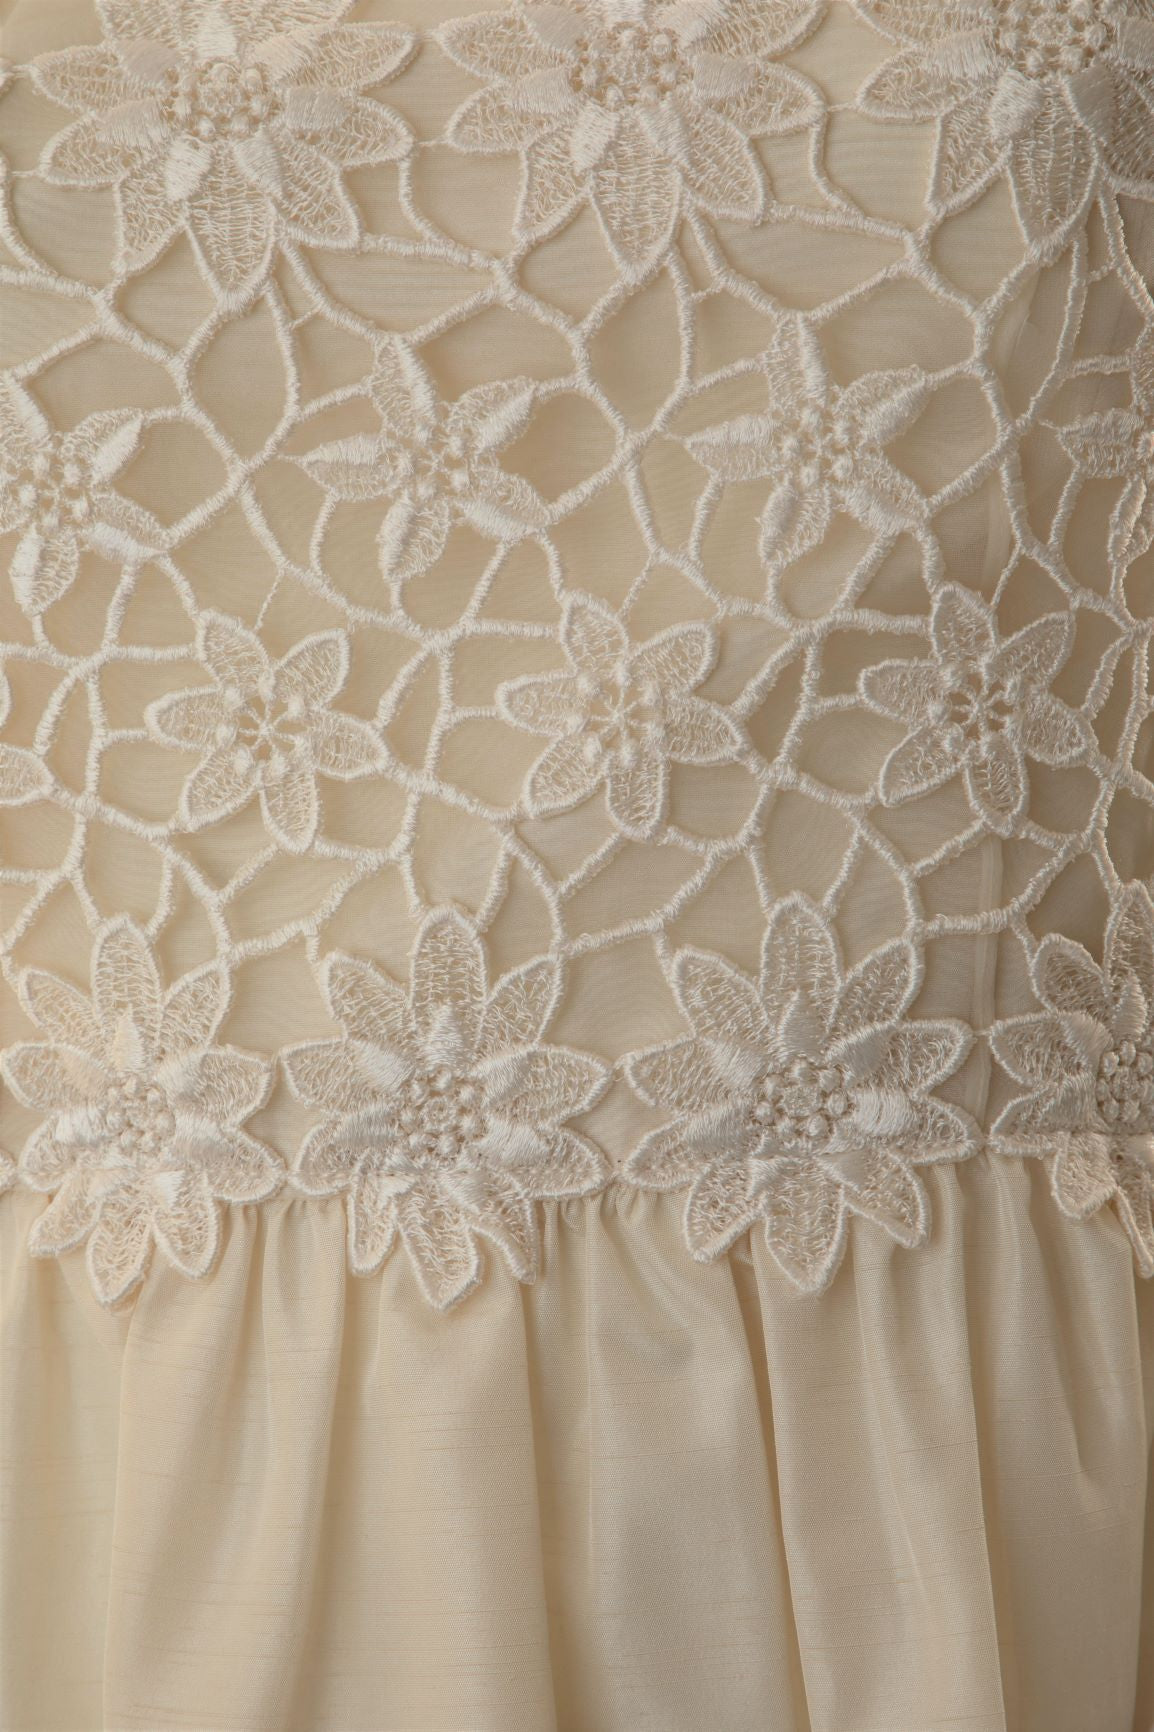 Vintage - Guipure Lace and Shantung Taffeta Dress